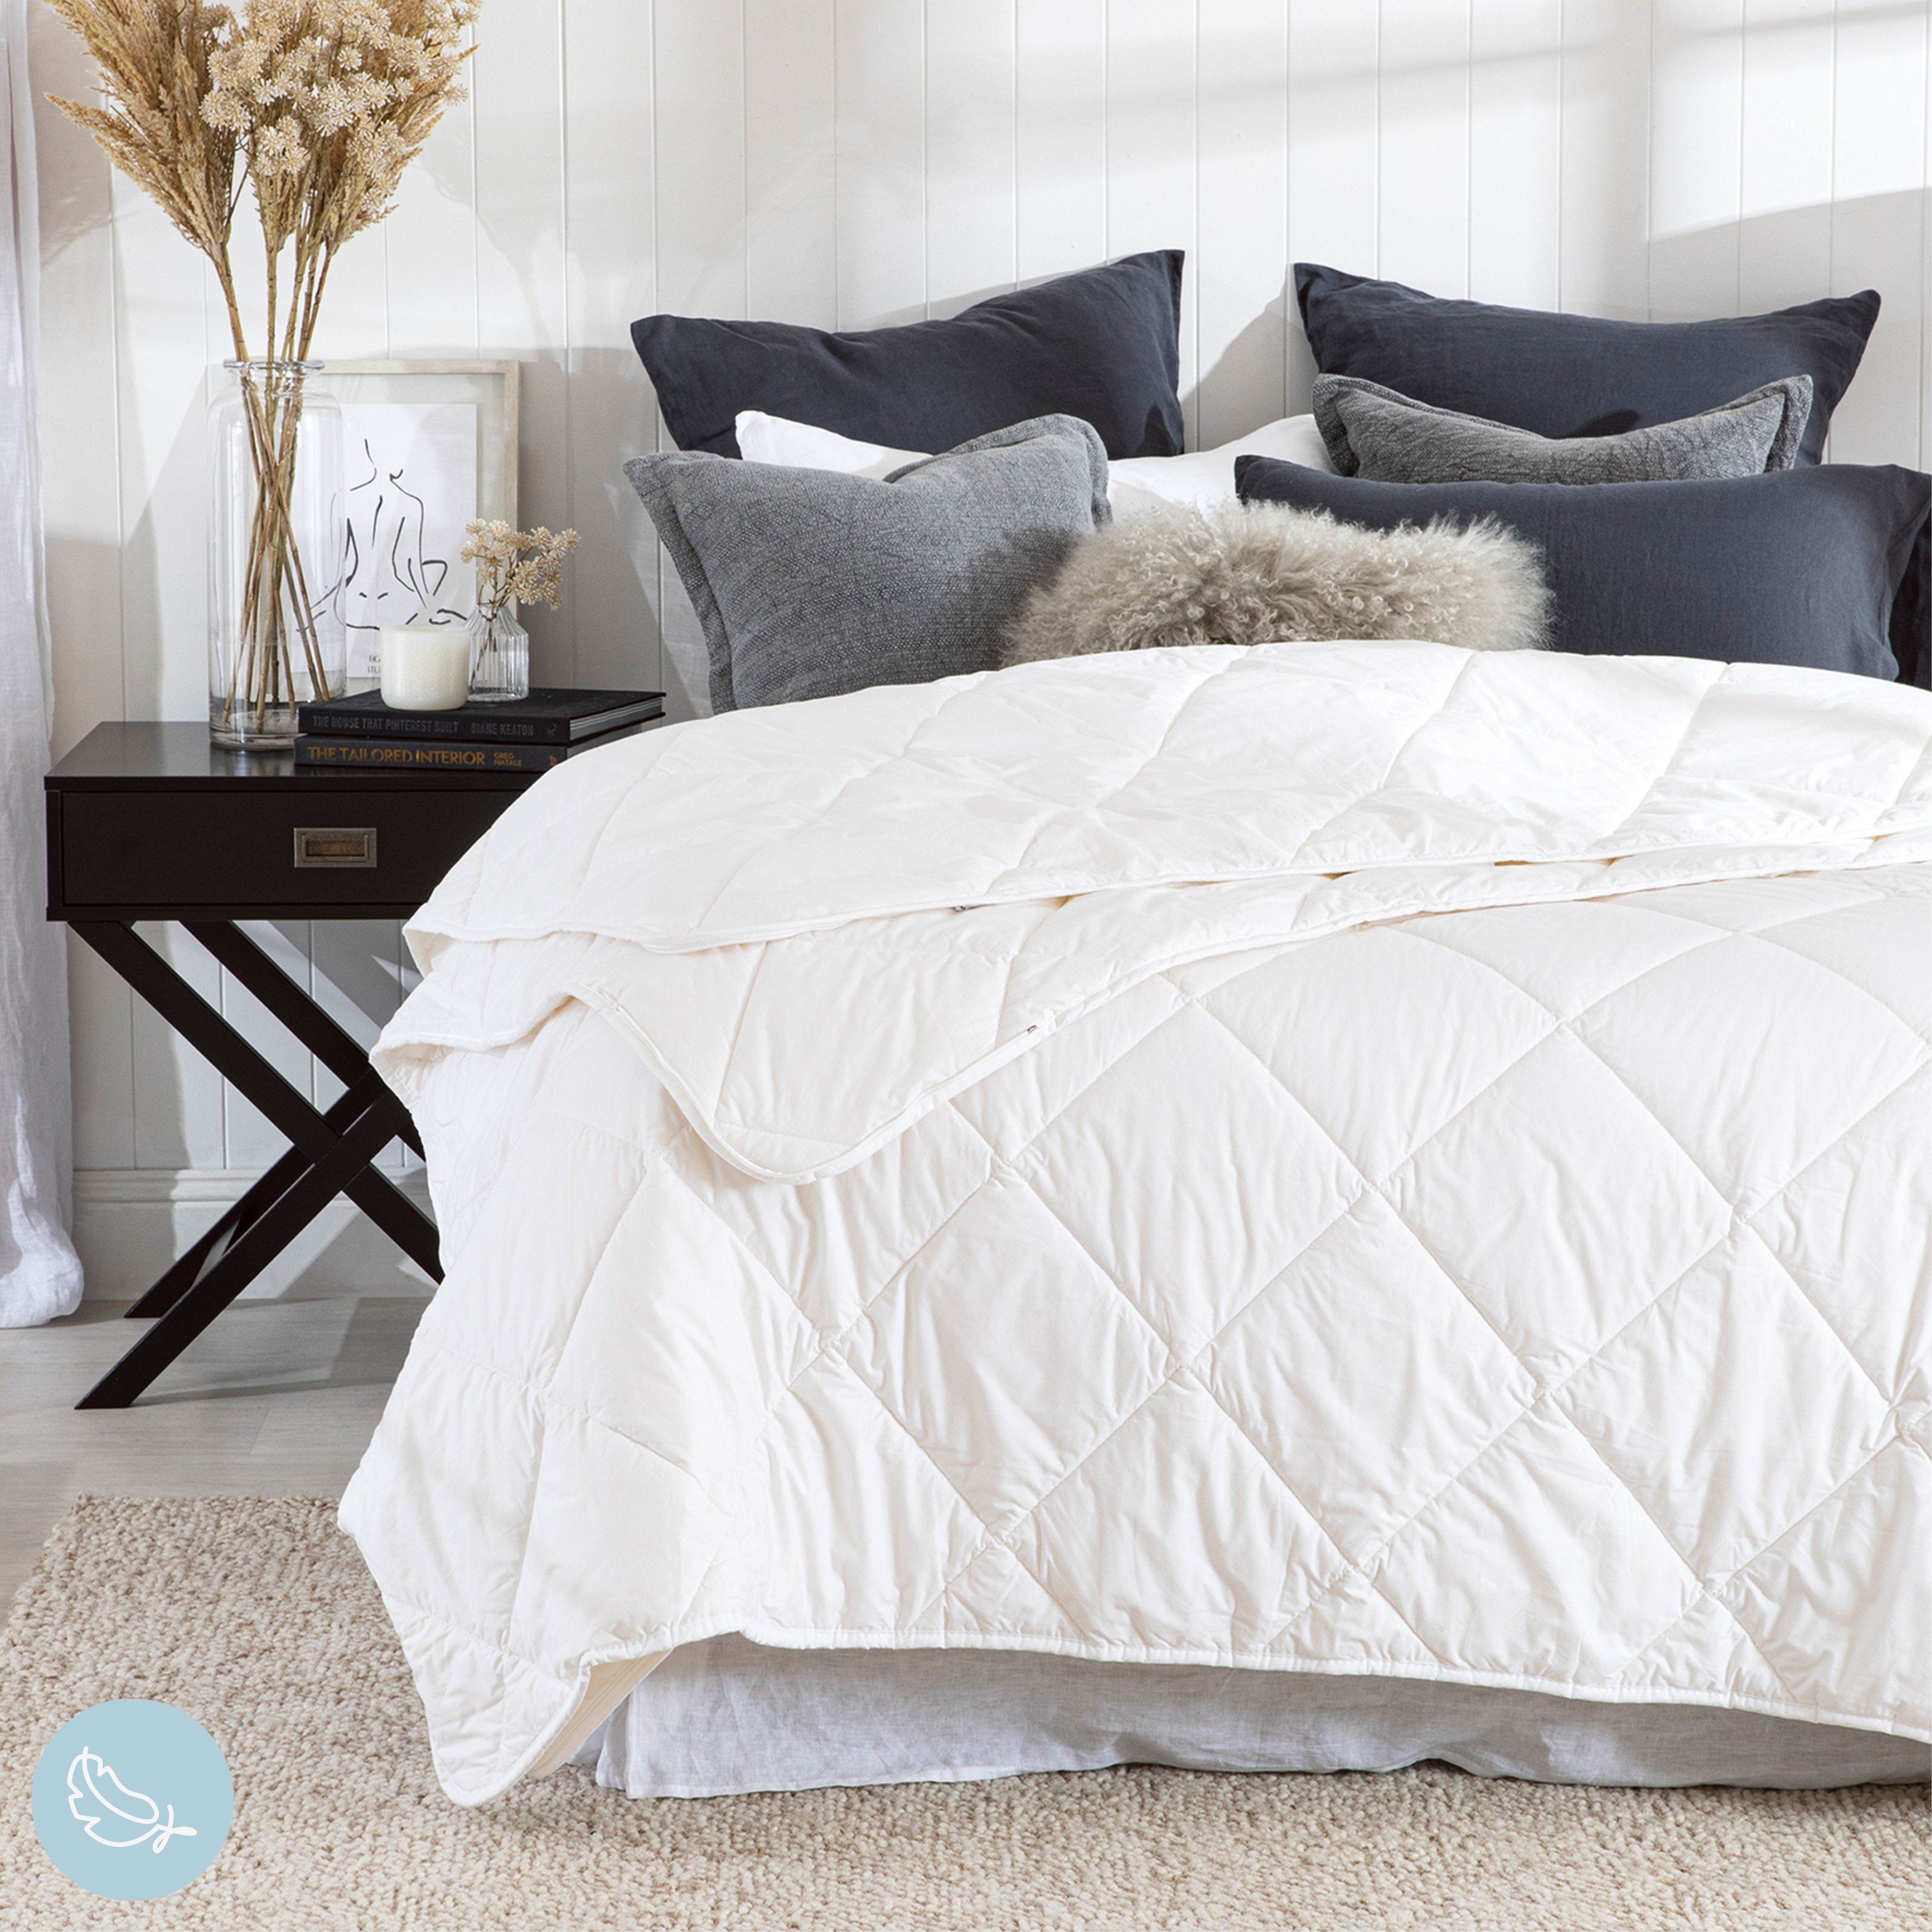 The Cooler Weather Is Approaching And Now Is The Time To Upgrade Your Bedding A Warm Quilt Will Help You To Sleep Snuggly All